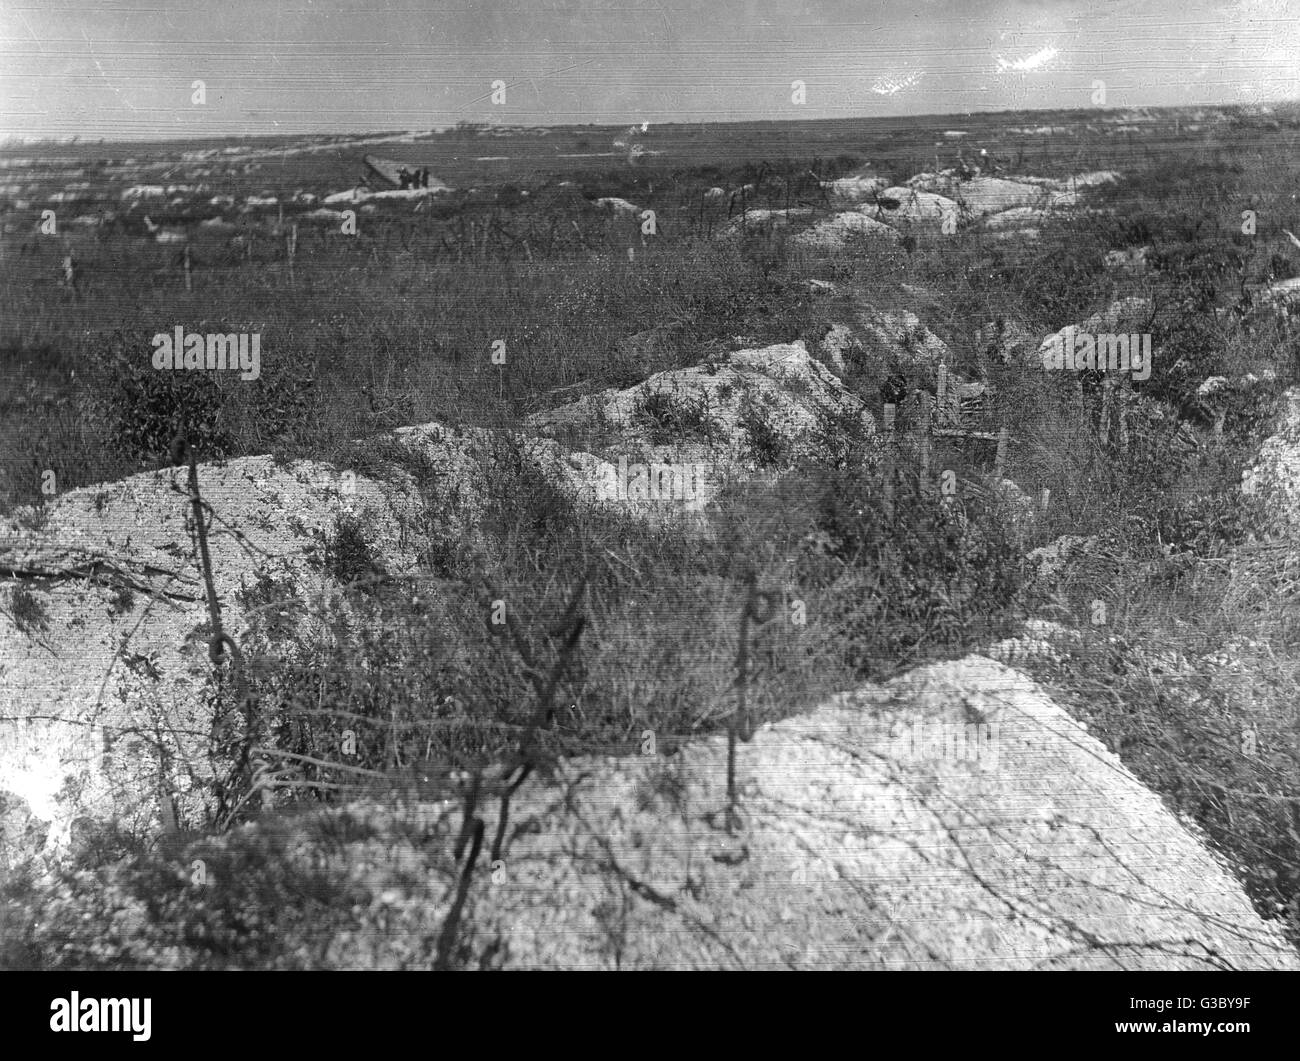 WW1 - No Man's Land as seen in 1920     Date: 1920 - Stock Image